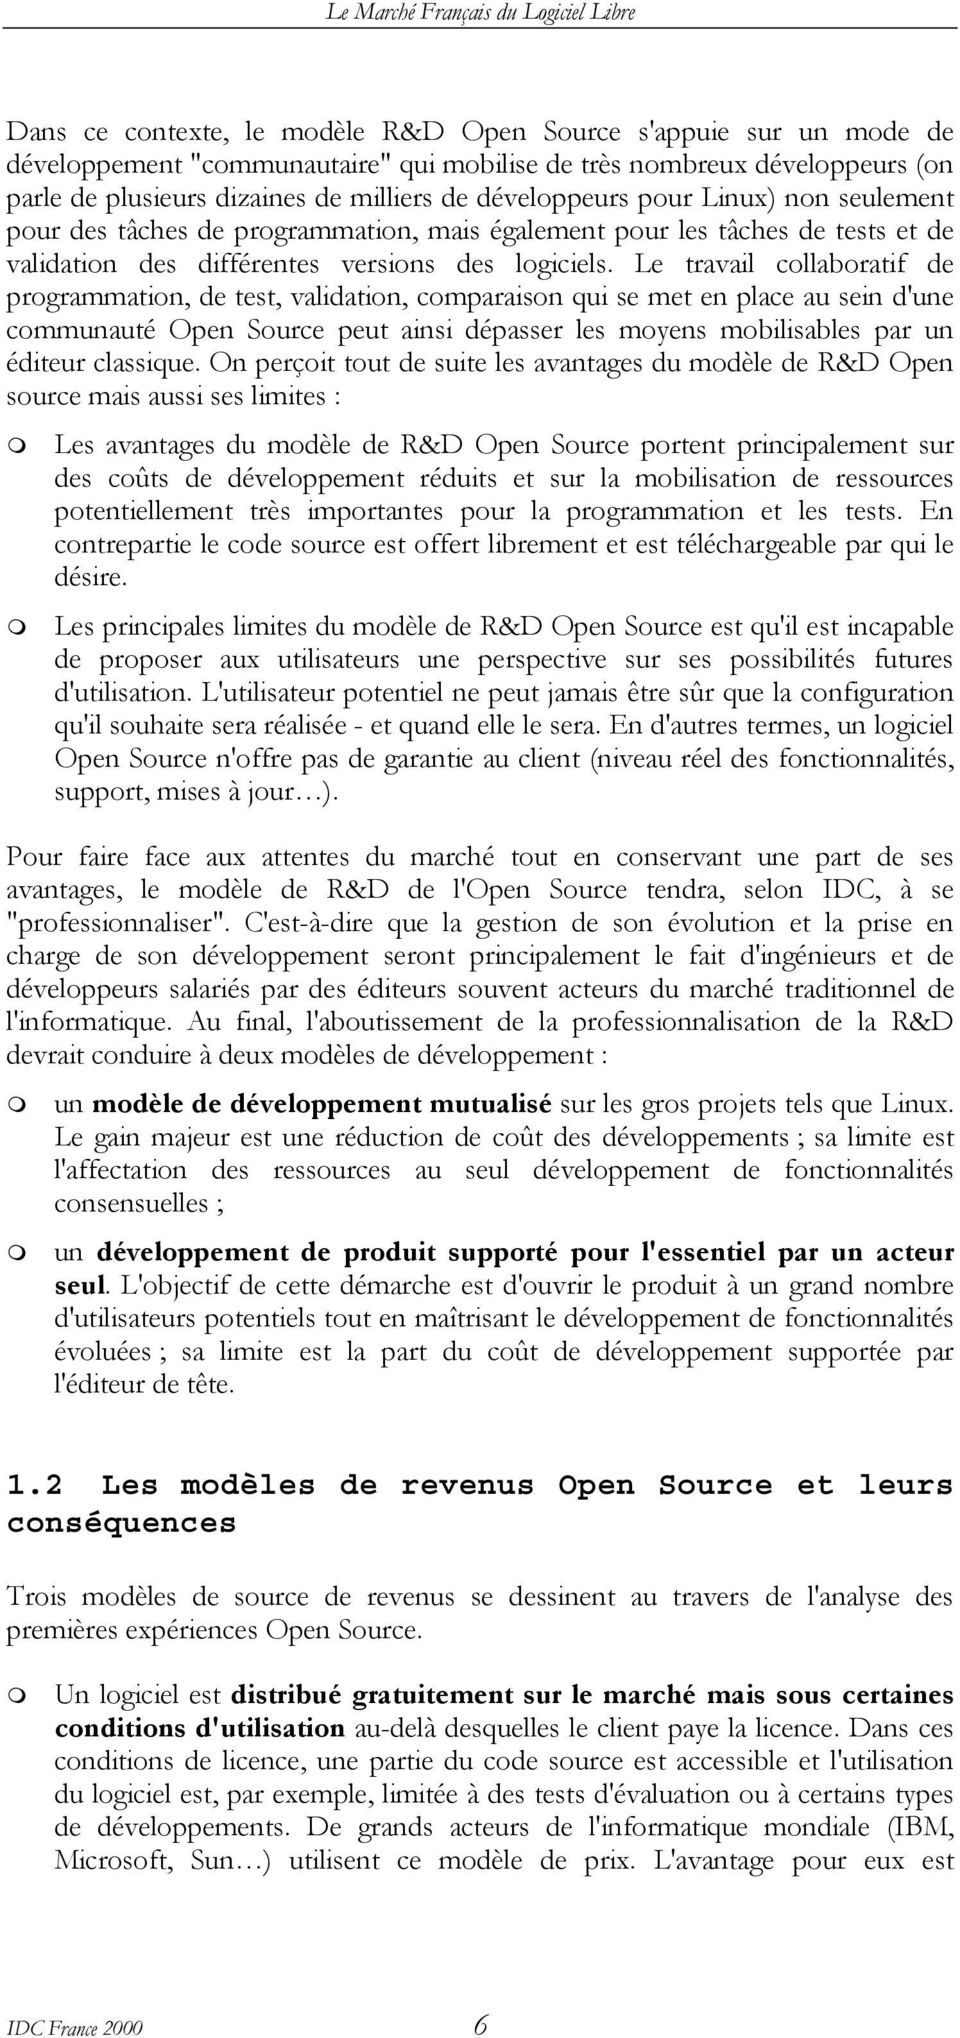 Le travail collaboratif de programmation, de test, validation, comparaison qui se met en place au sein d'une communauté Open Source peut ainsi dépasser les moyens mobilisables par un éditeur